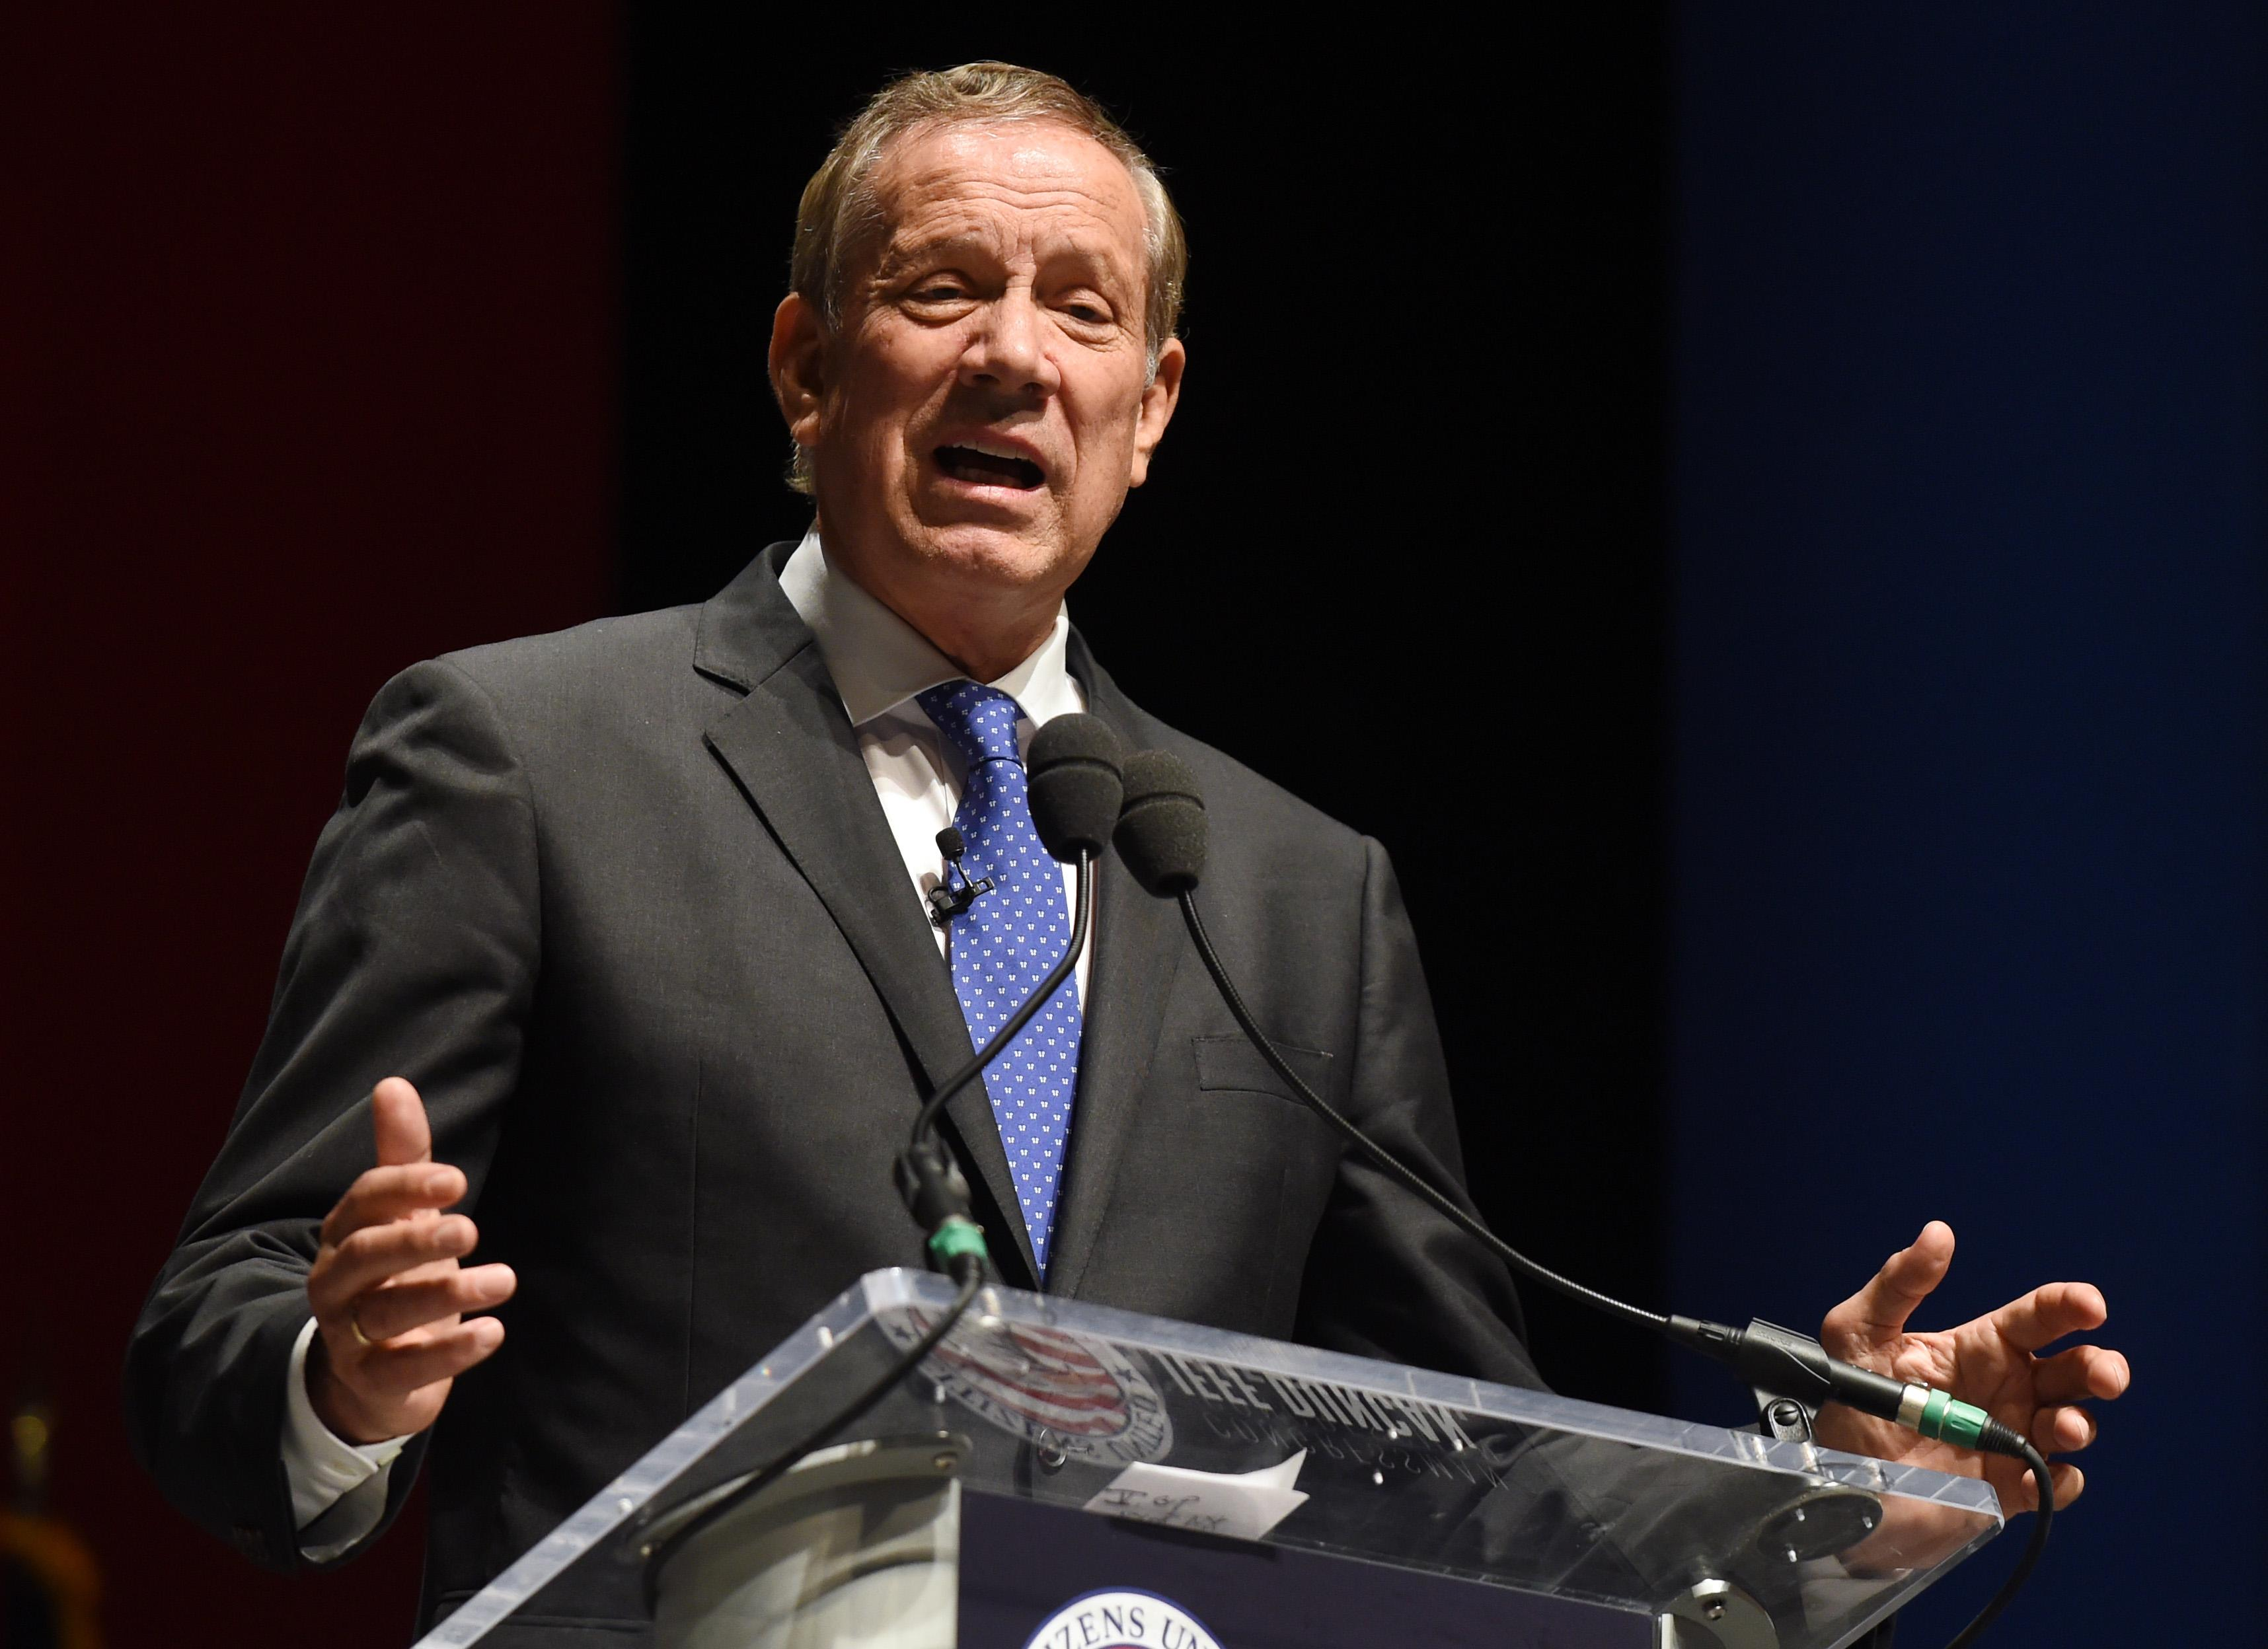 Former NY GOP governor Pataki will run for president in 2016